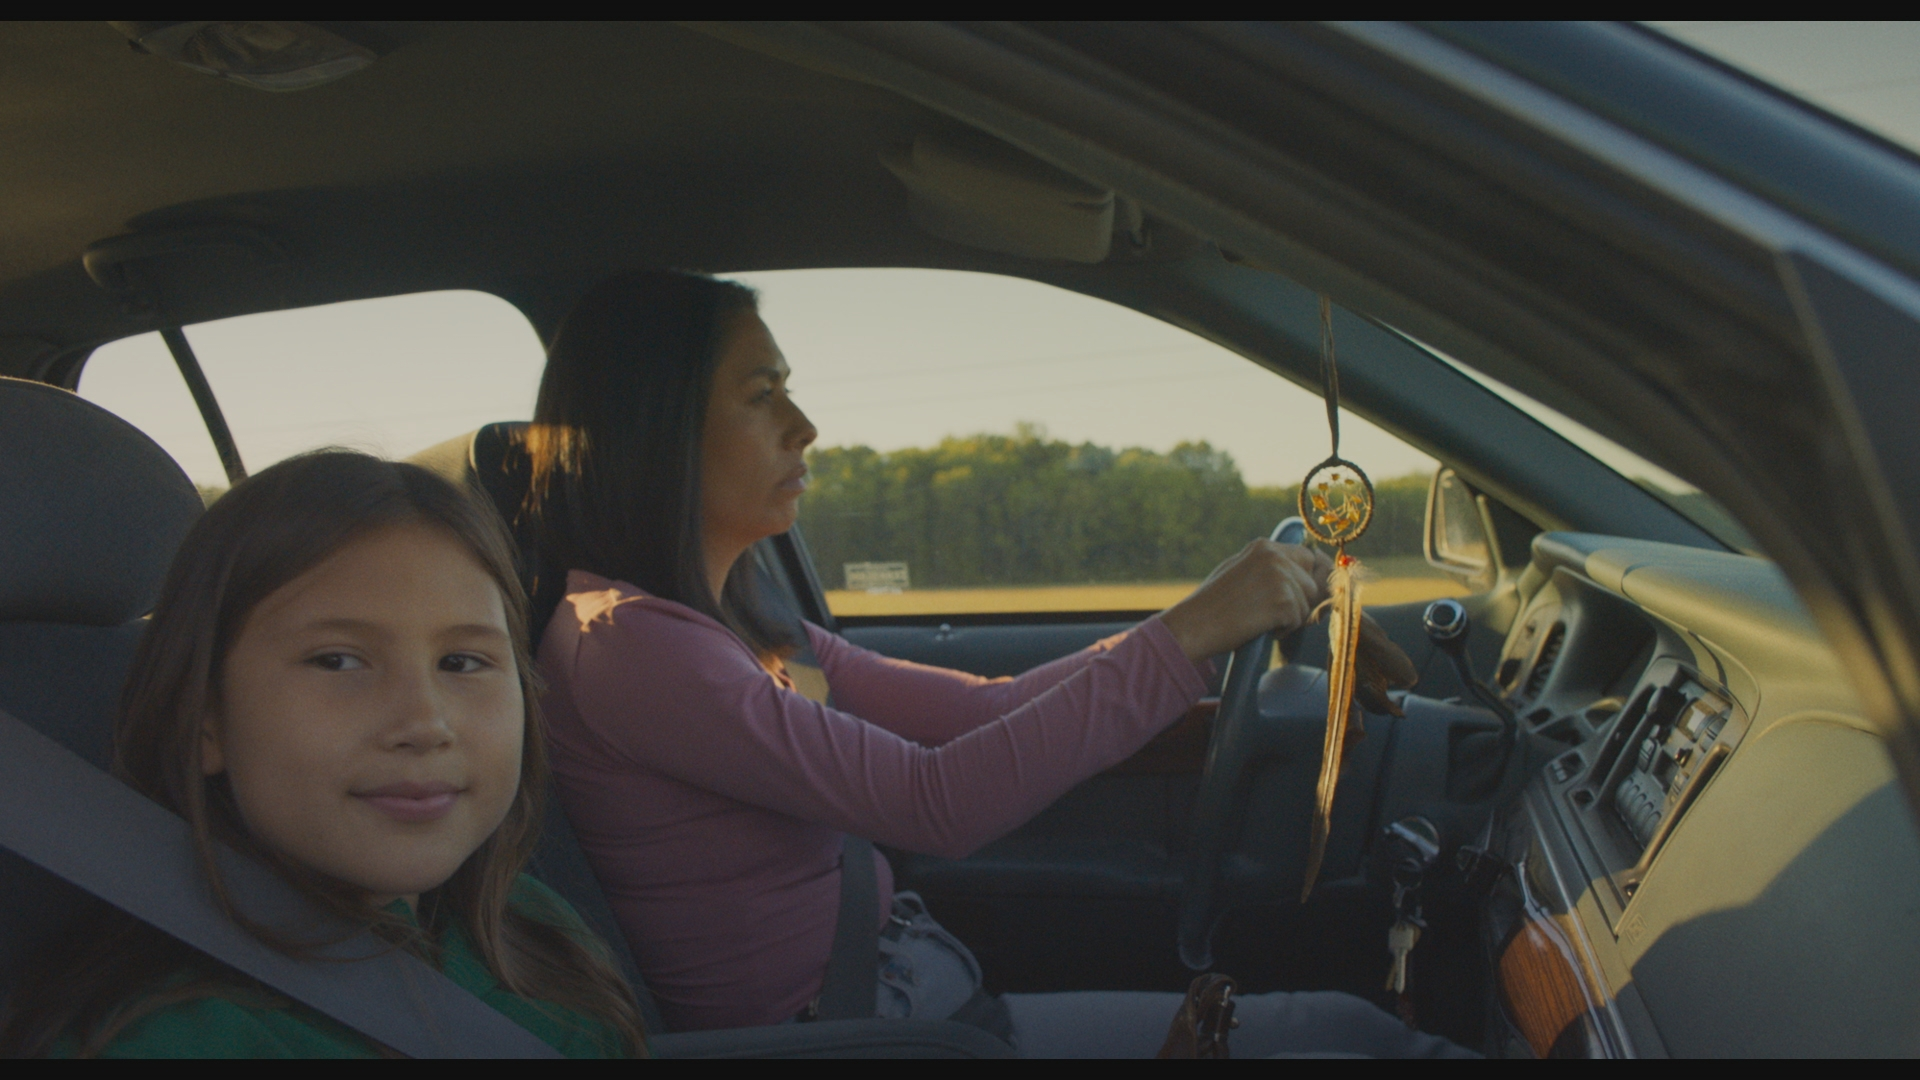 Lake Delisle as Ivy and Carmen Moore as Susan driving in a car